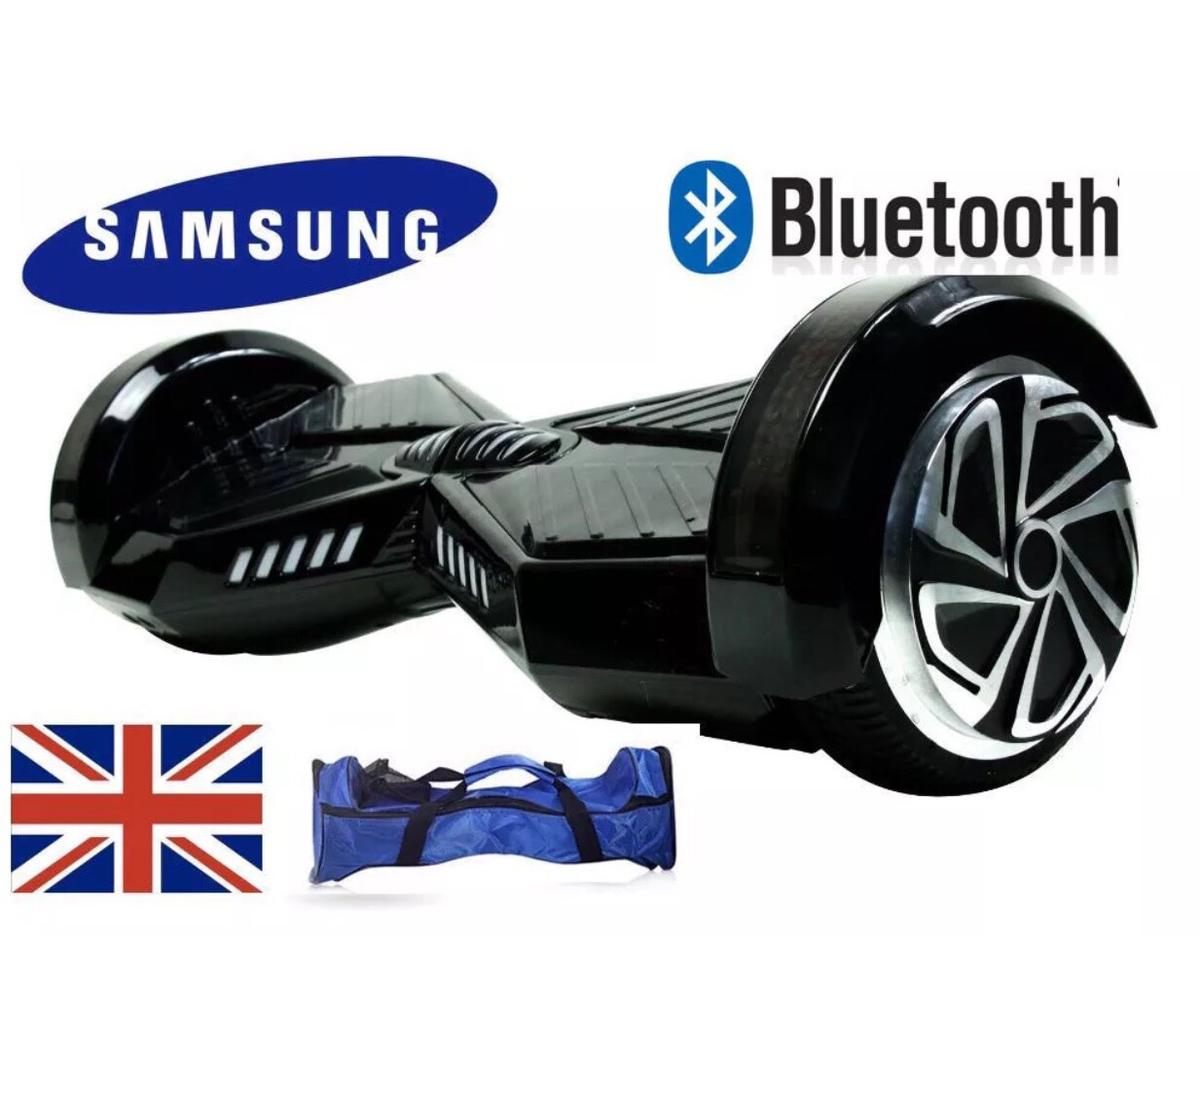 Black hoverboard 8inch bluetooth bag samsung in NW6 London